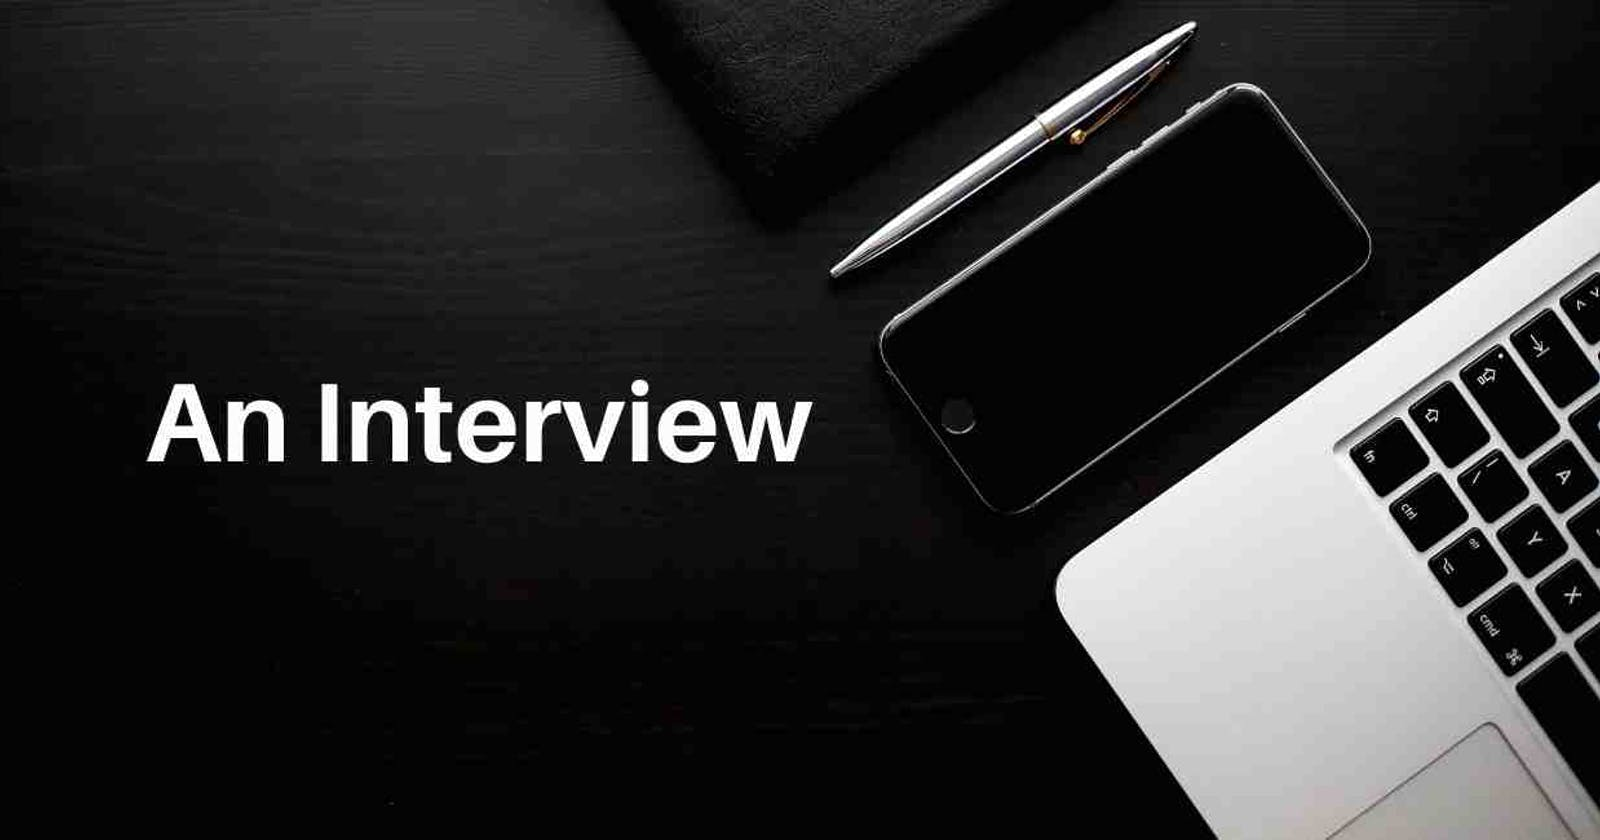 An Interview with no last response.